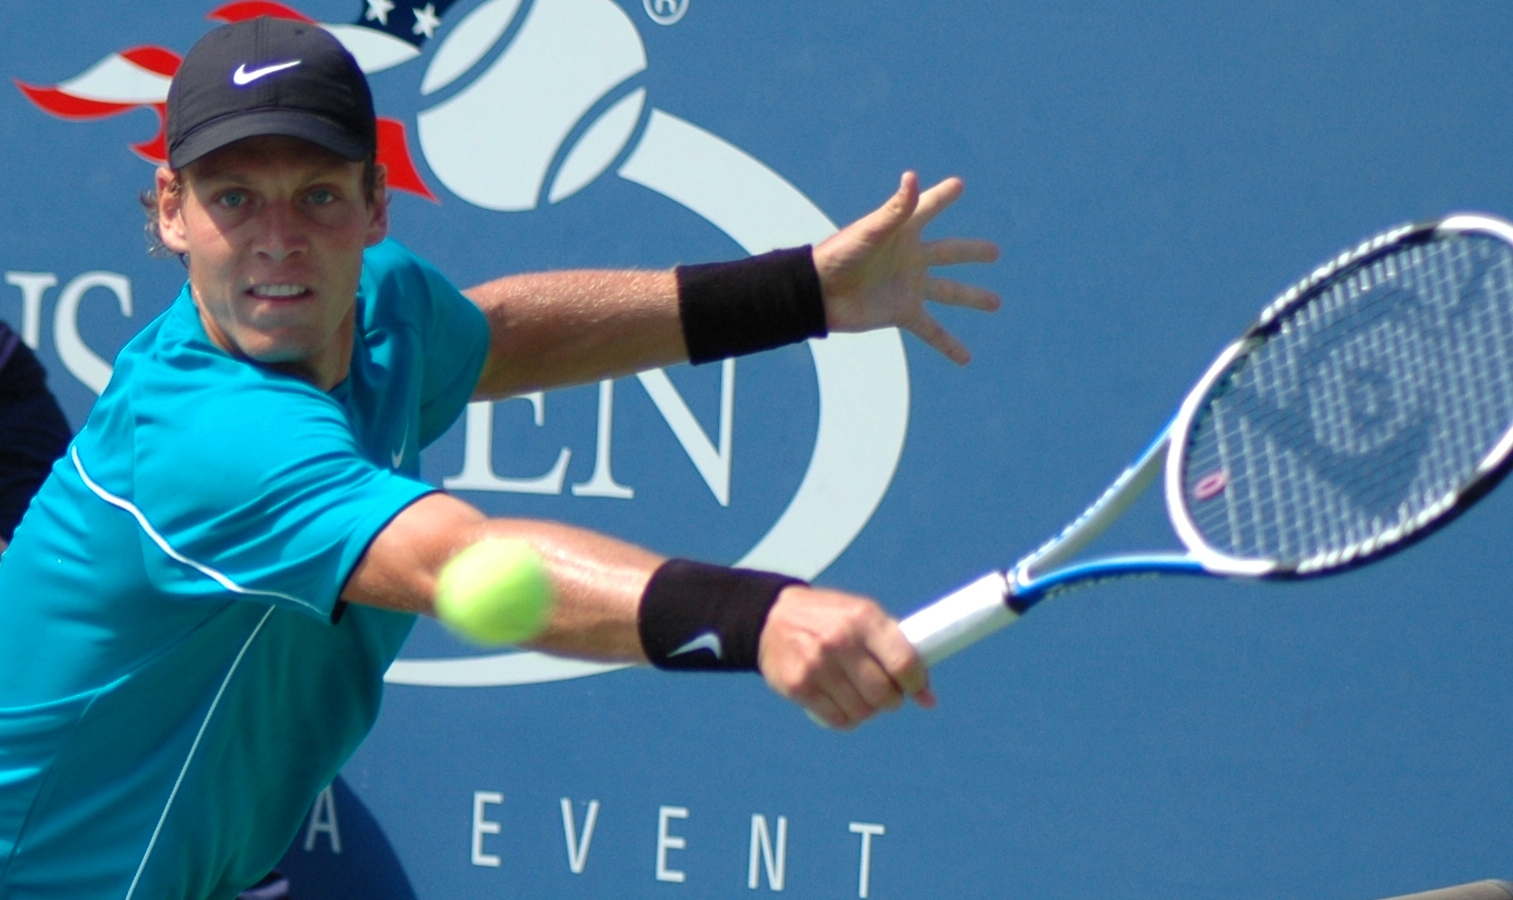 Czech Tennis star Tomáš Berdych ends his career at age 34